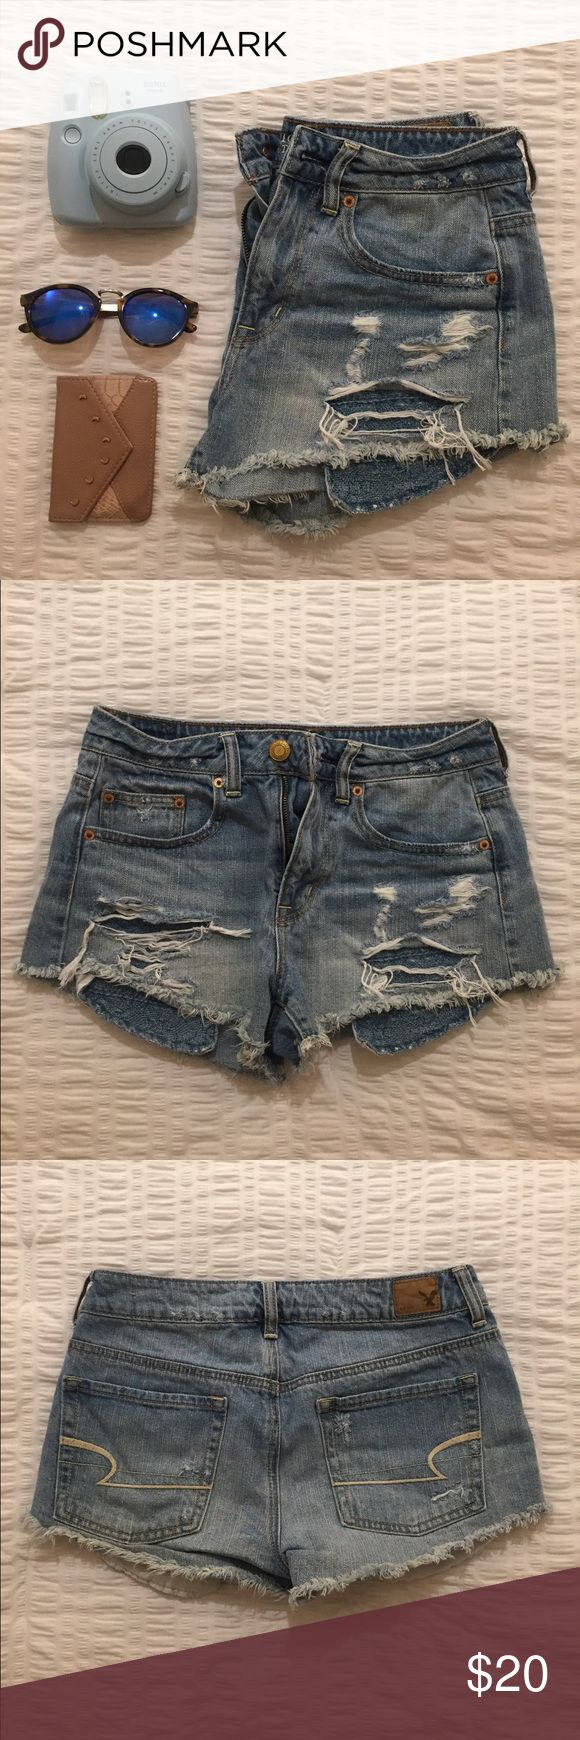 american eagle outfitters jean shorts jean shorts from american eagle outfitters. frayed bottom, rips in front, two front pockets, two back pockets. American Eagle Outfitters Shorts Jean Shorts